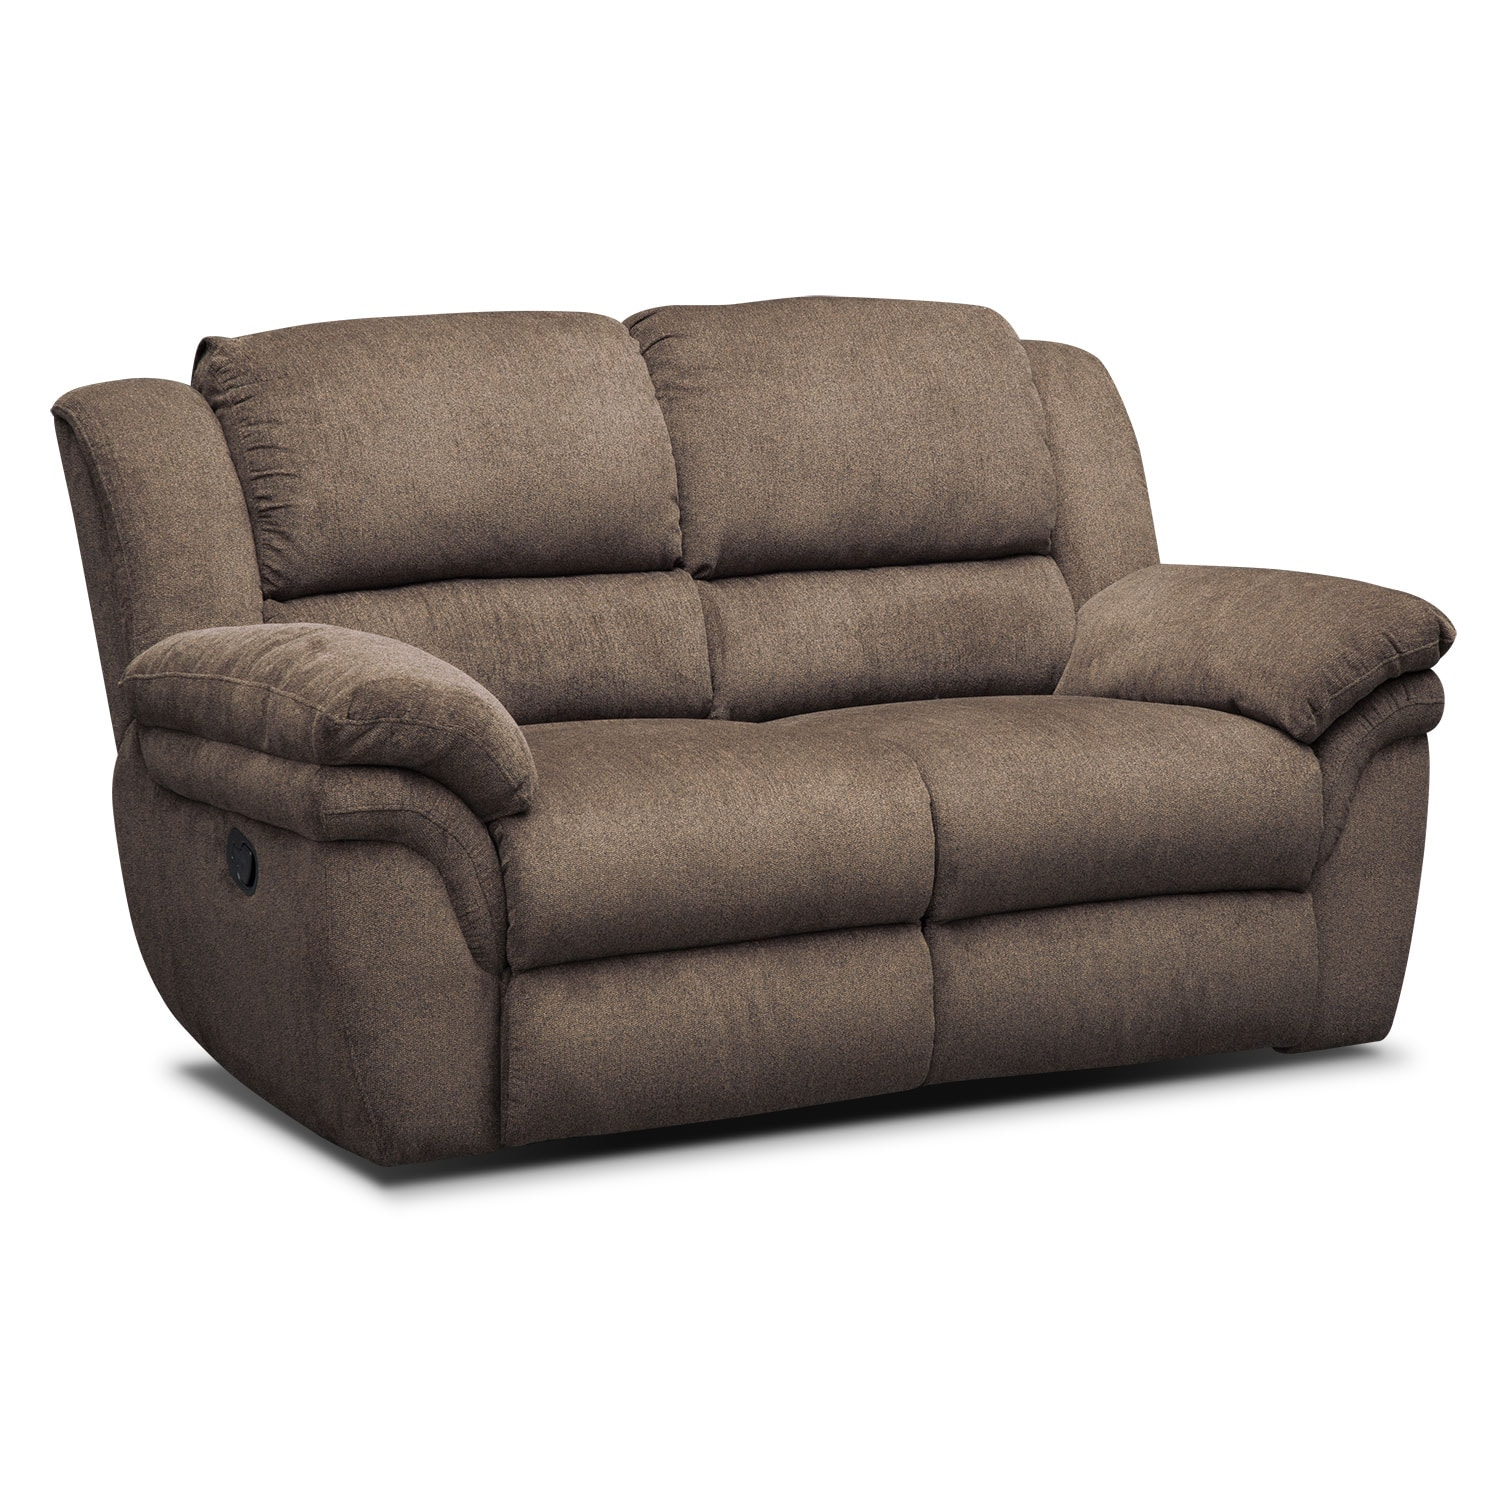 Power Reclining Sofa Vs Manual Sofa Review